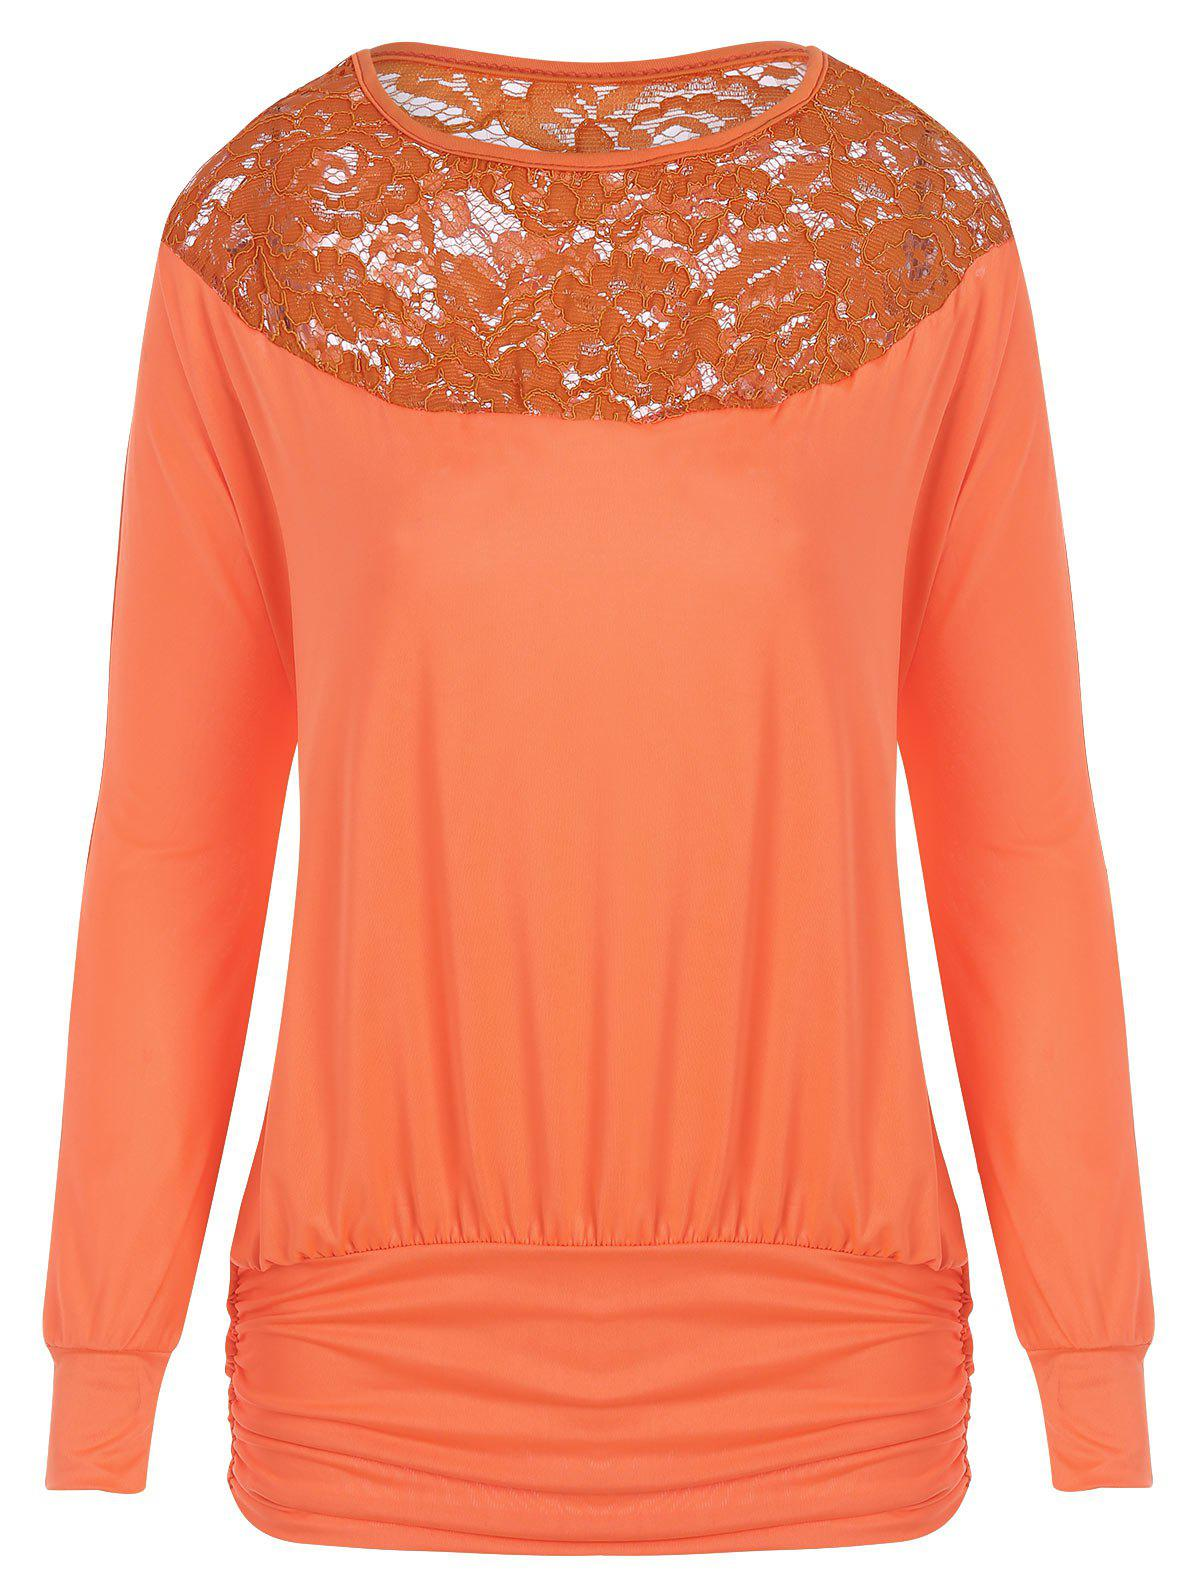 Lace Panel Scrunch Long Sleeve Top